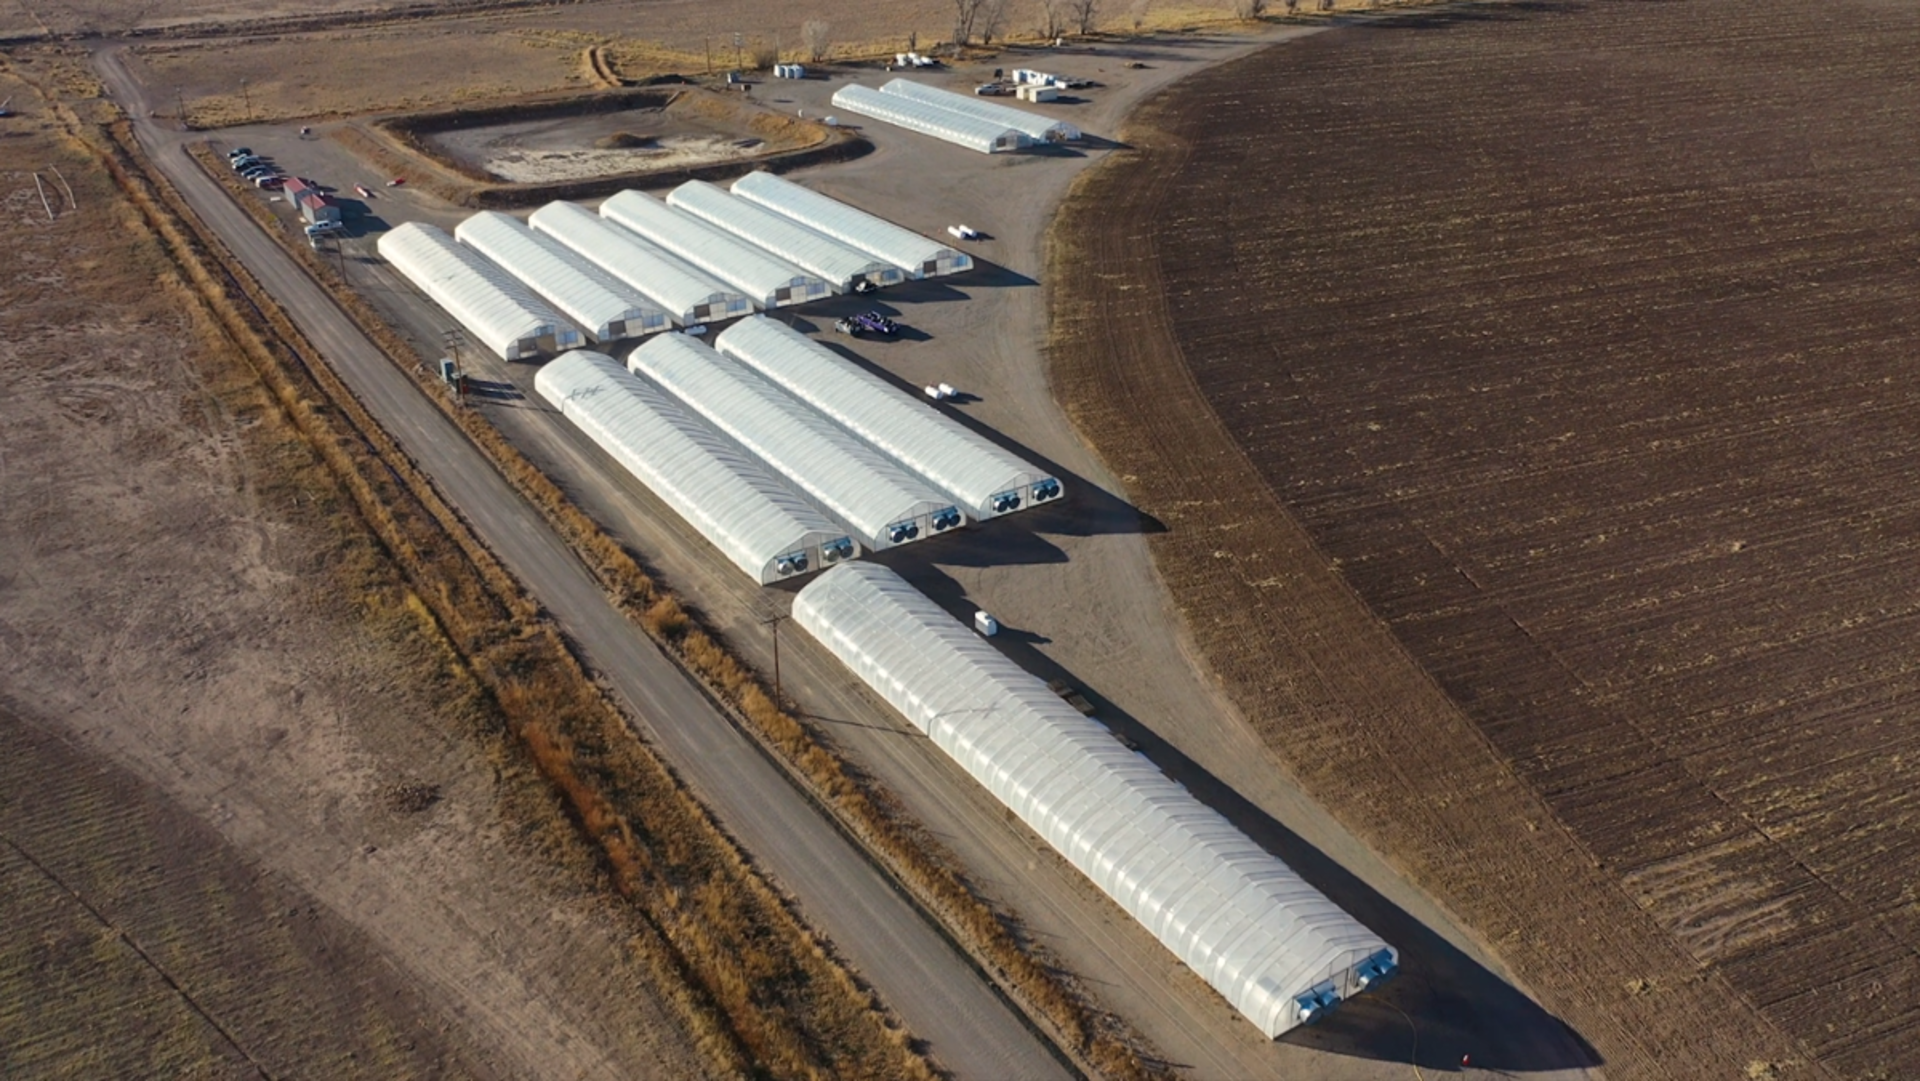 Scenic Acres Greenhouse Mfg Greenhouse w/ Four Exhaust Fans and Two Heaters, 34' x 200' gothic hoop - Image 3 of 7